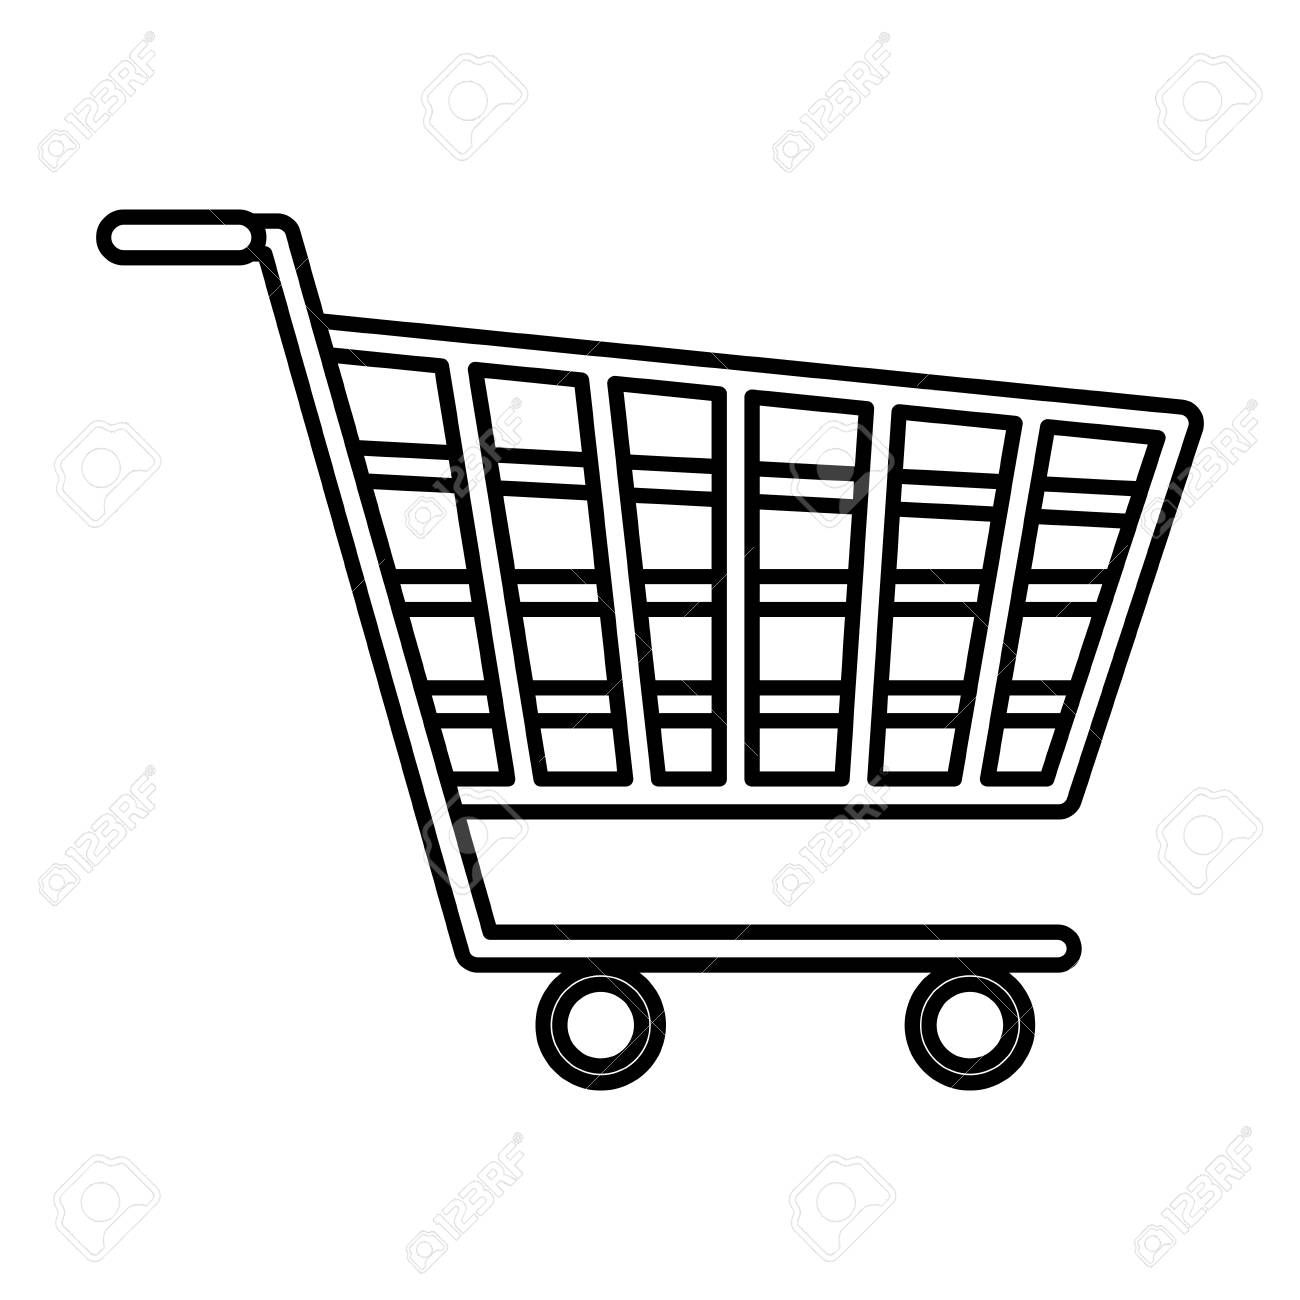 Shopping Cart Isolated Icon Vector Illustration Design Ad Isolated Cart Shopping Vector Illustration Design Illustration Design Vector Illustration